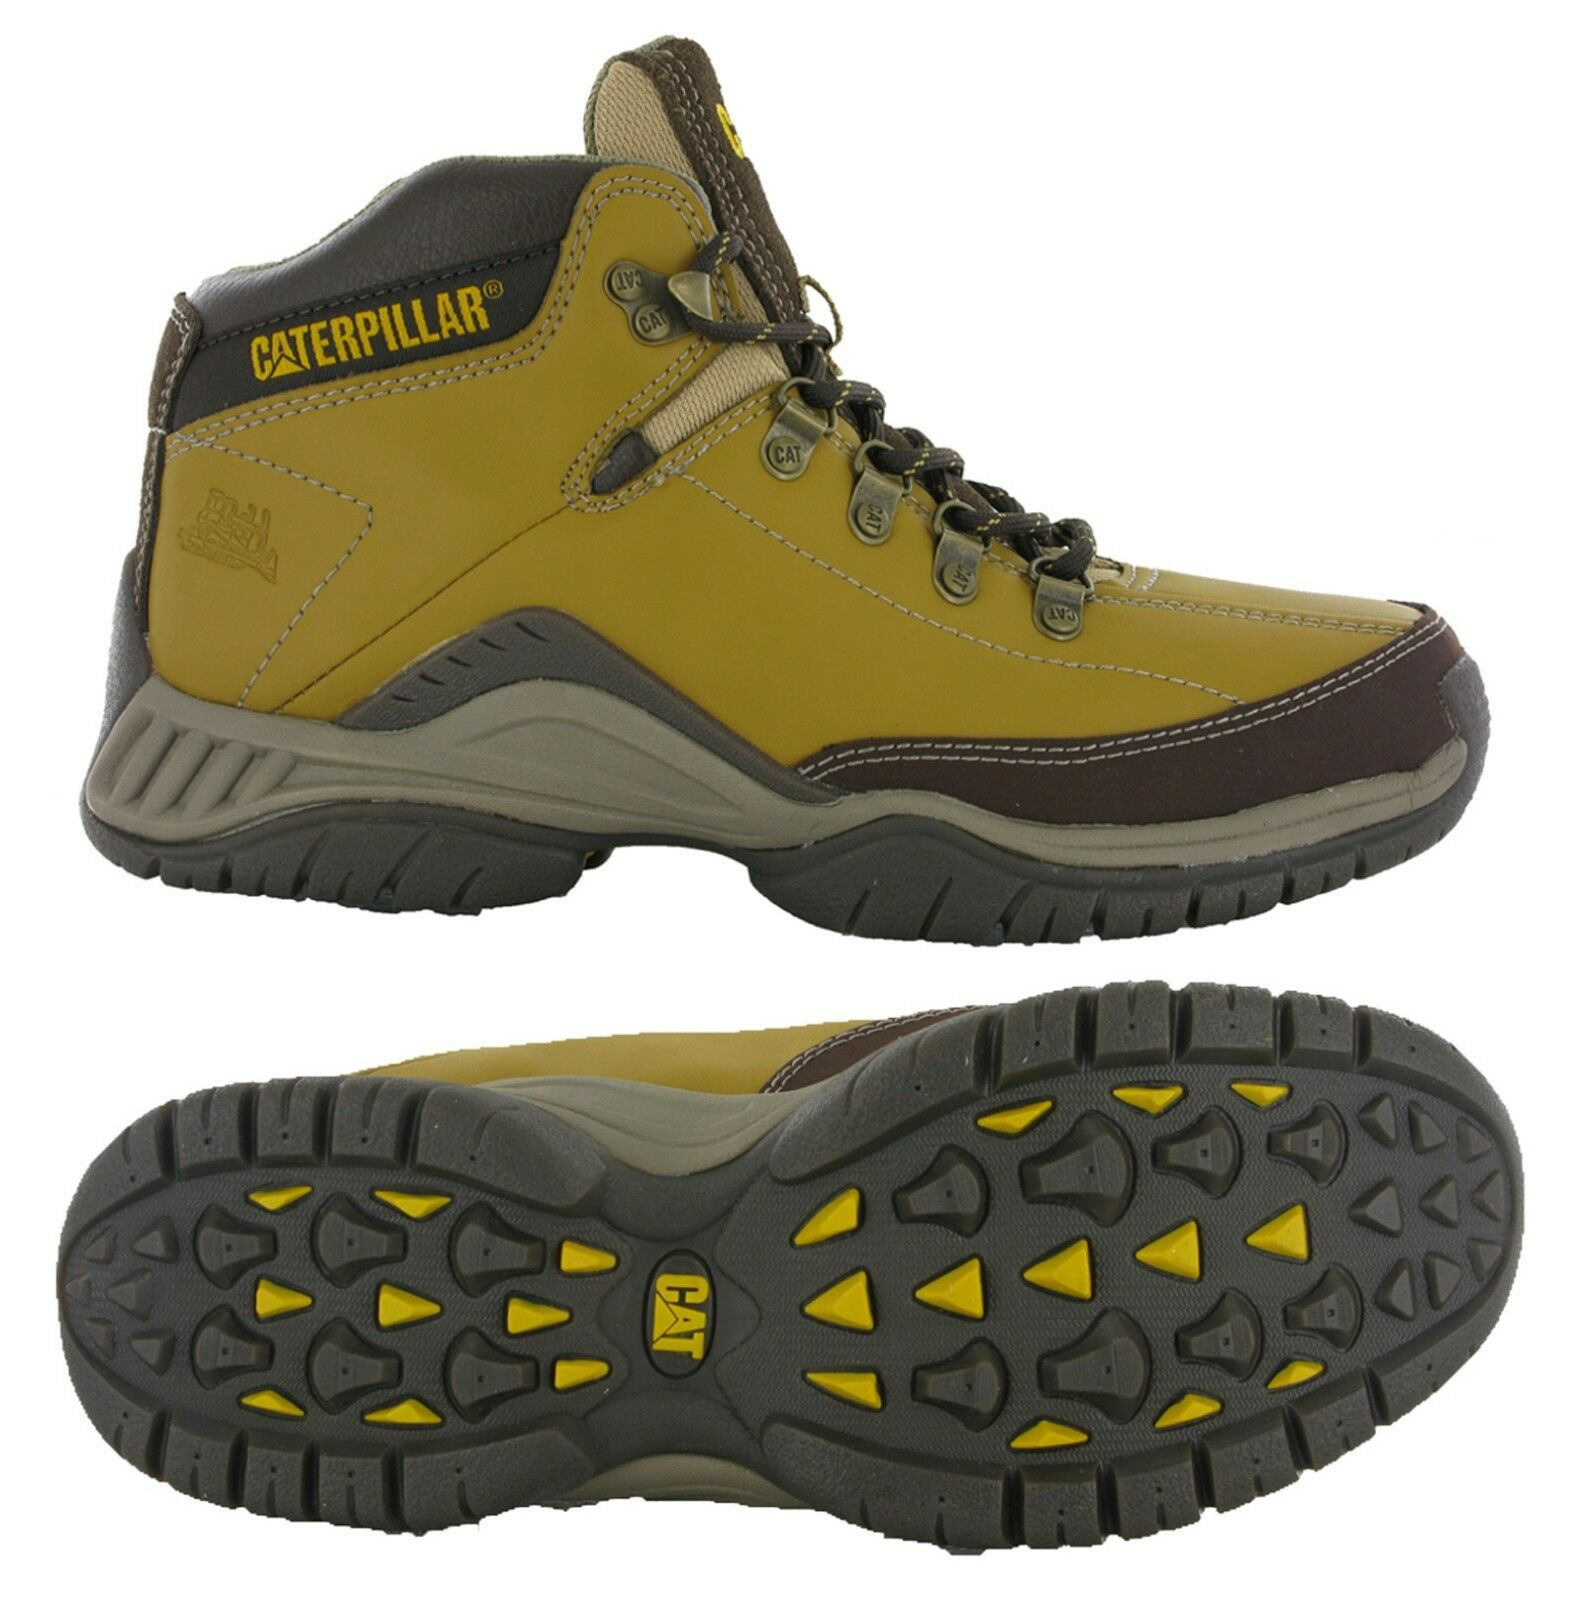 Caterpillar Collateral Lace Up Fashion Stiefel Stiefel Fashion 35545d